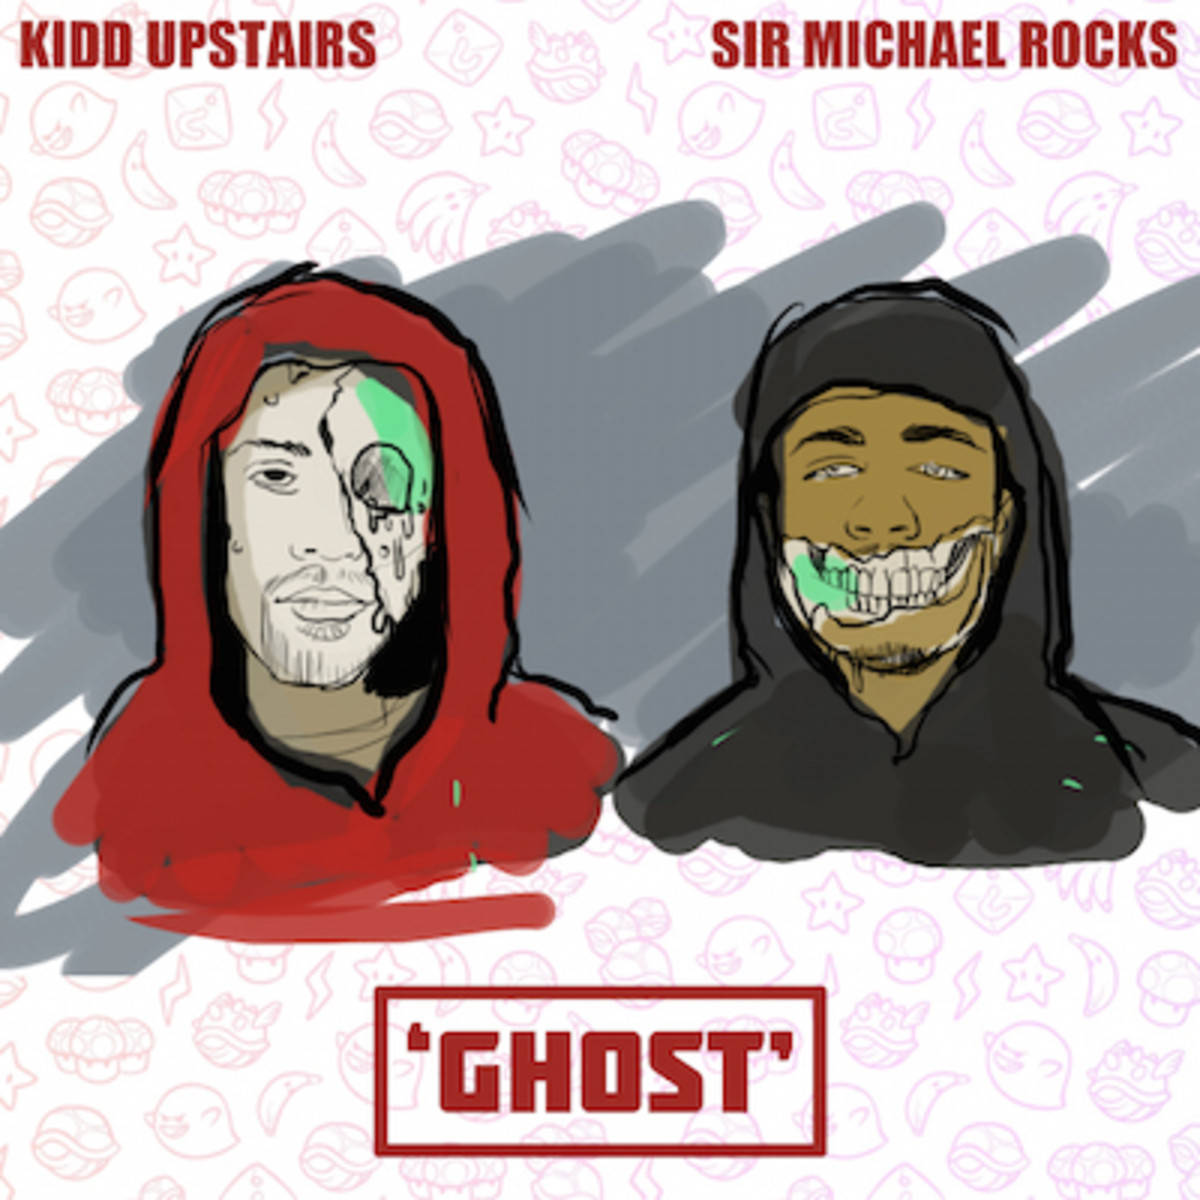 kidd-upstairs-ghost.jpg